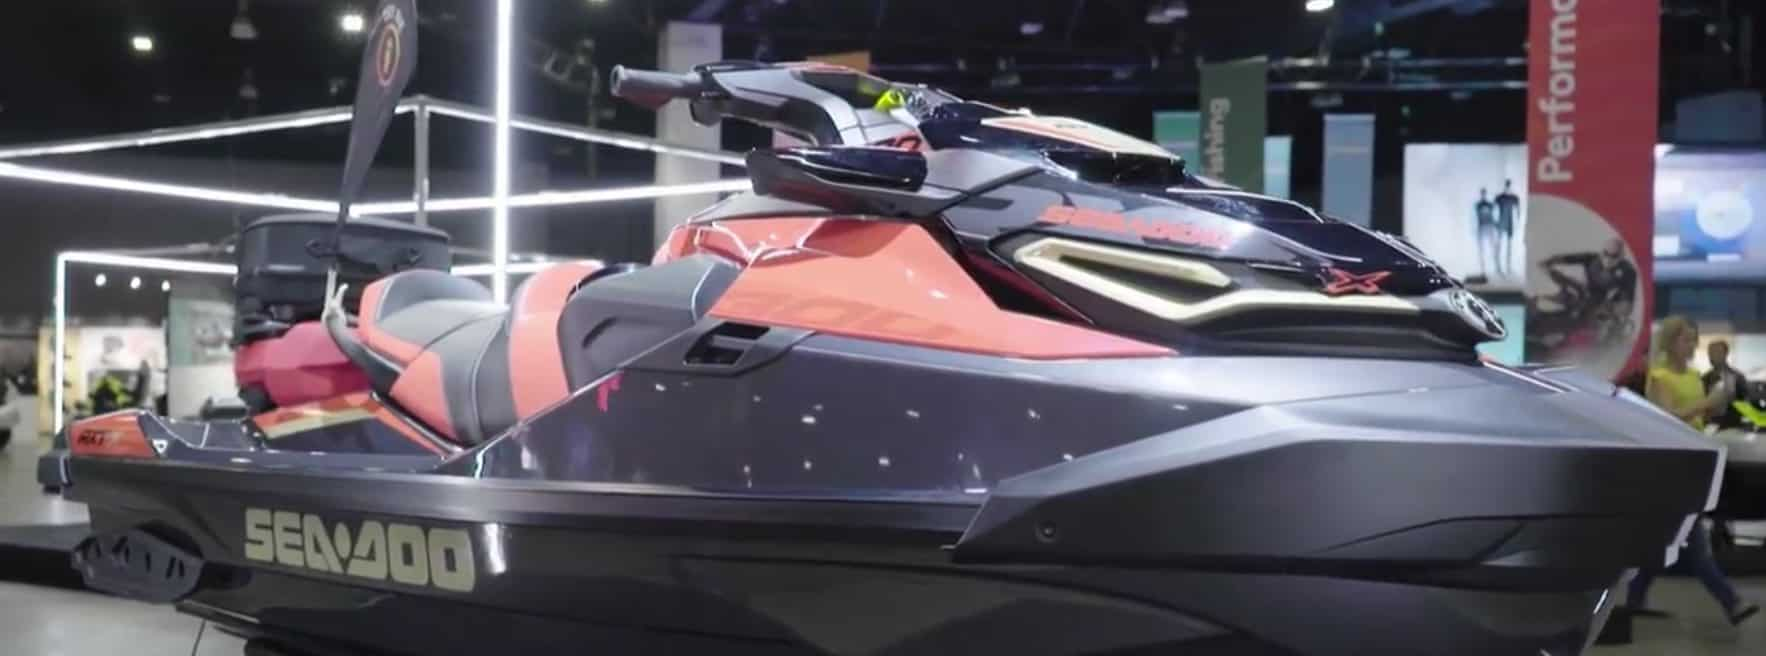 hight resolution of sea doo jet ski part diagram